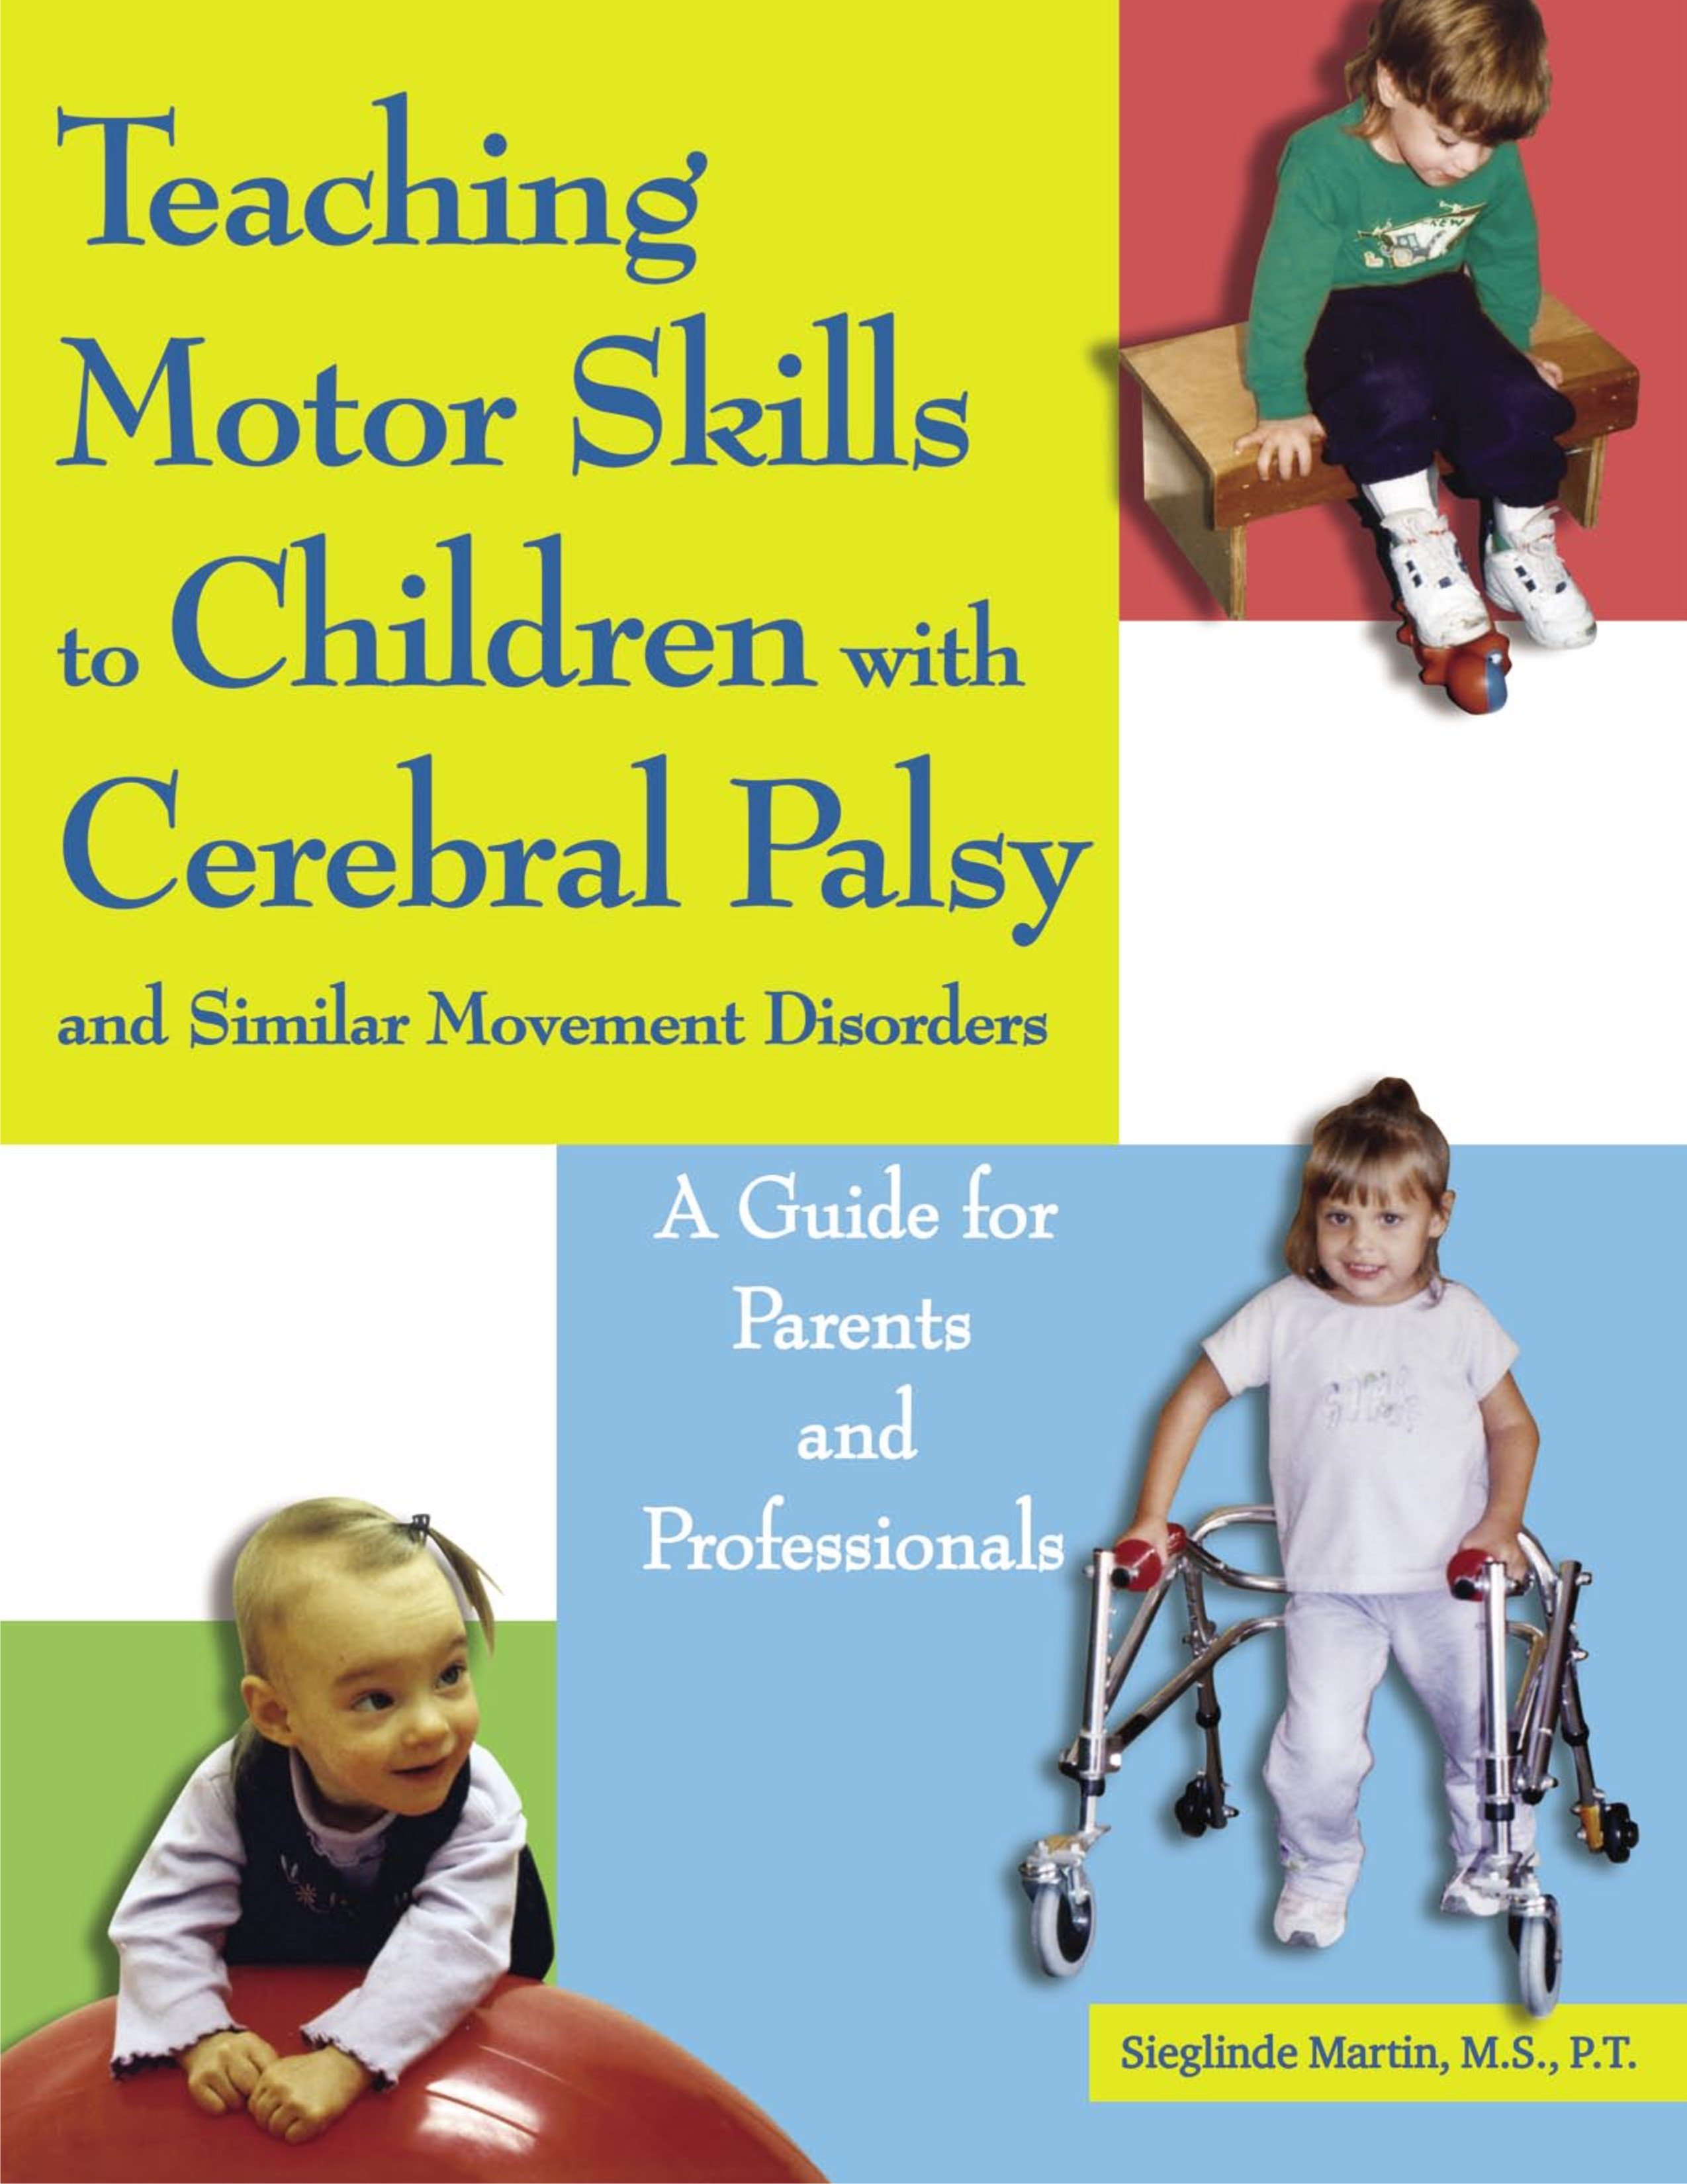 Teaching Motor Skills to Children with Cerebral Palsy - https://yourtherapysource.com/CPmotorskills.html